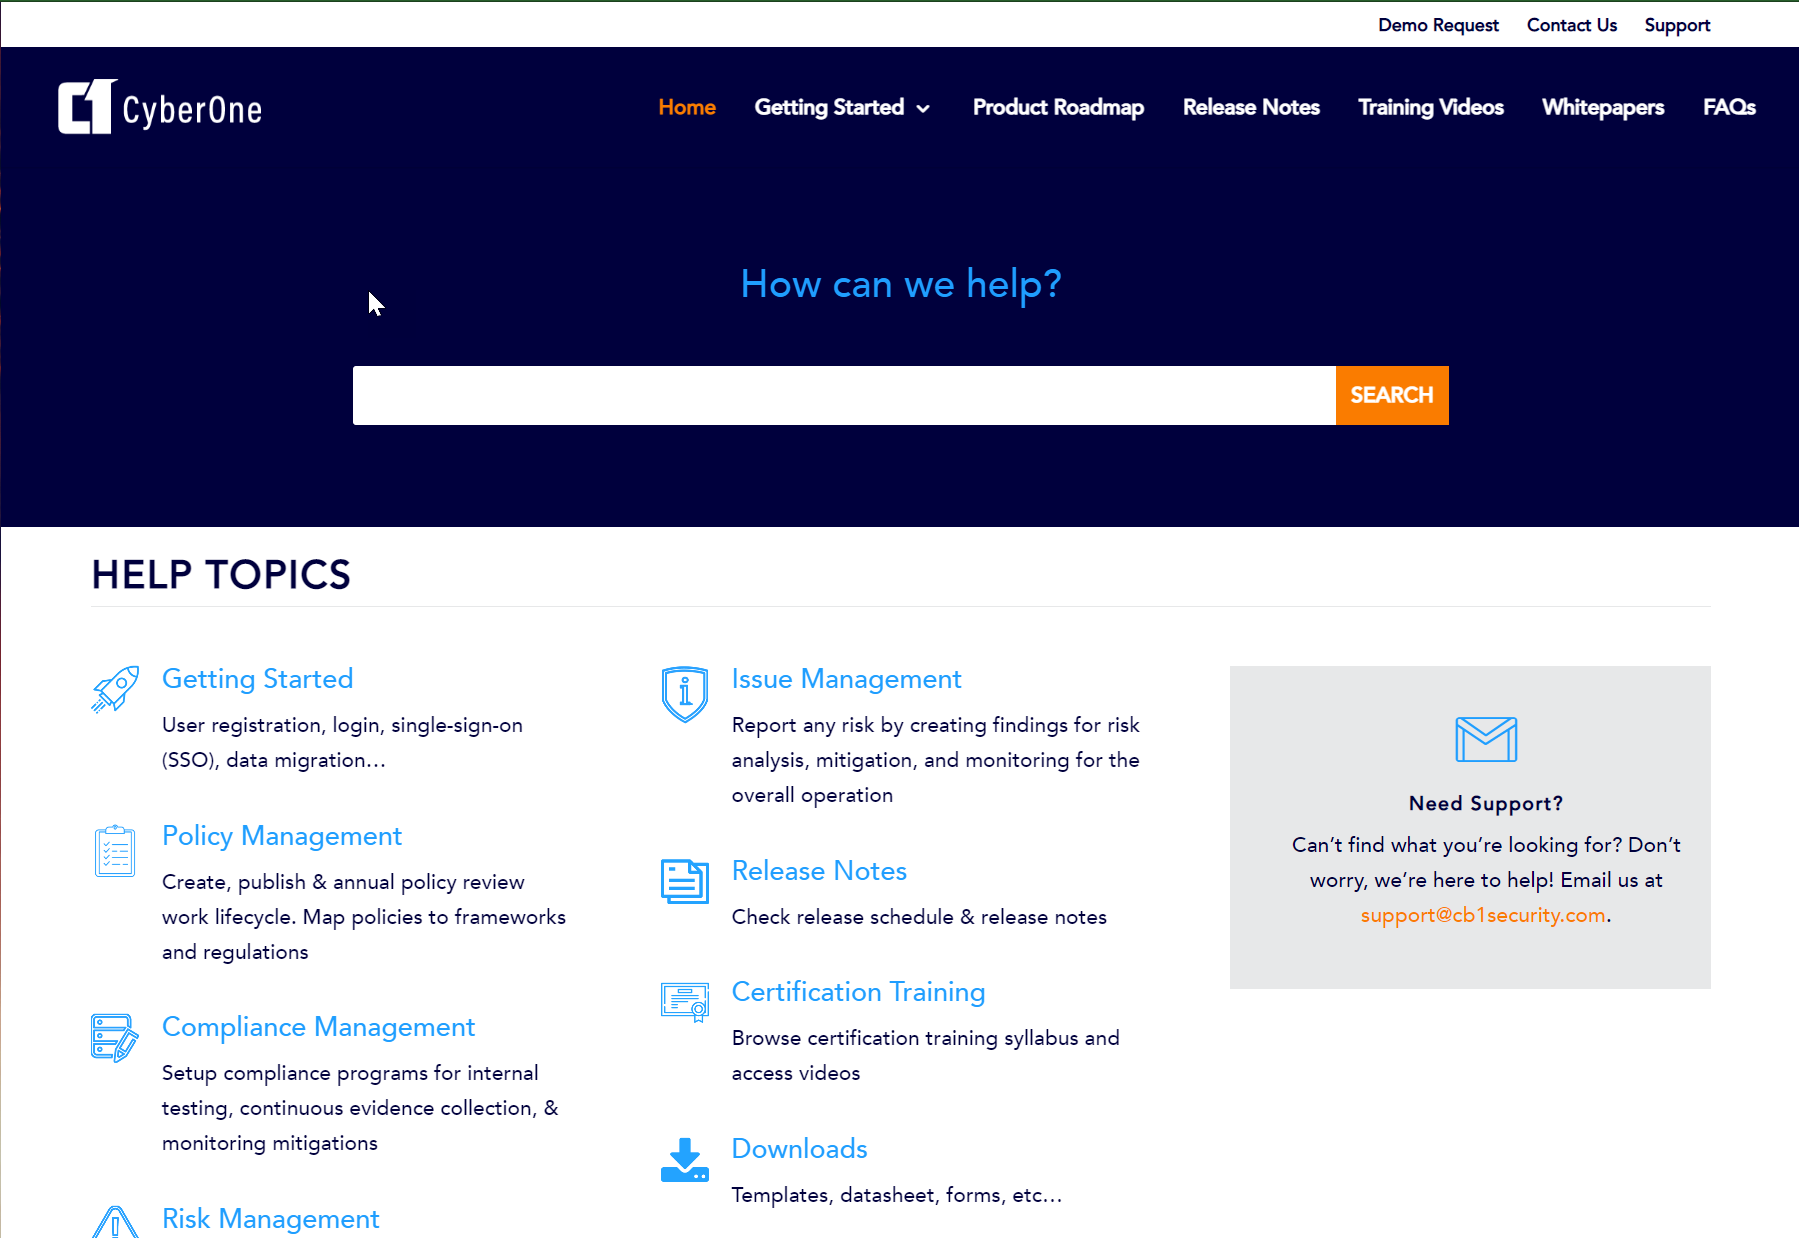 CyberOne Software - Training Site with 300+ Videos and Guidance offerings